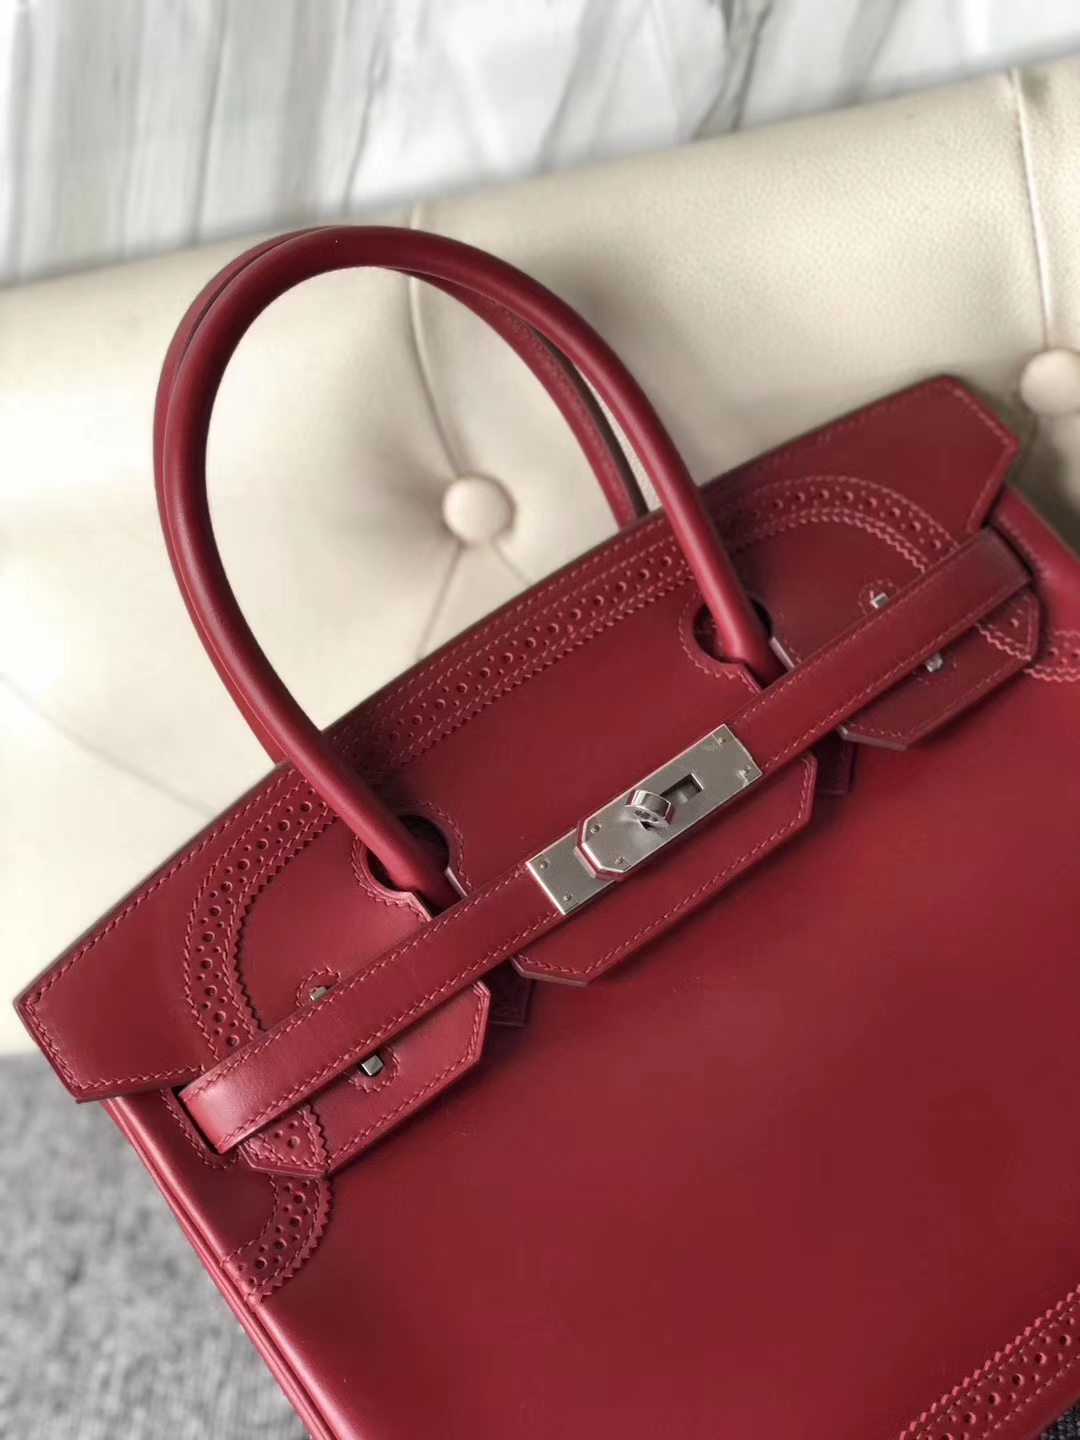 New Hermes Rouge Ruby Boxcalf Ghillies Birkin Bag30cm Silver Hardware